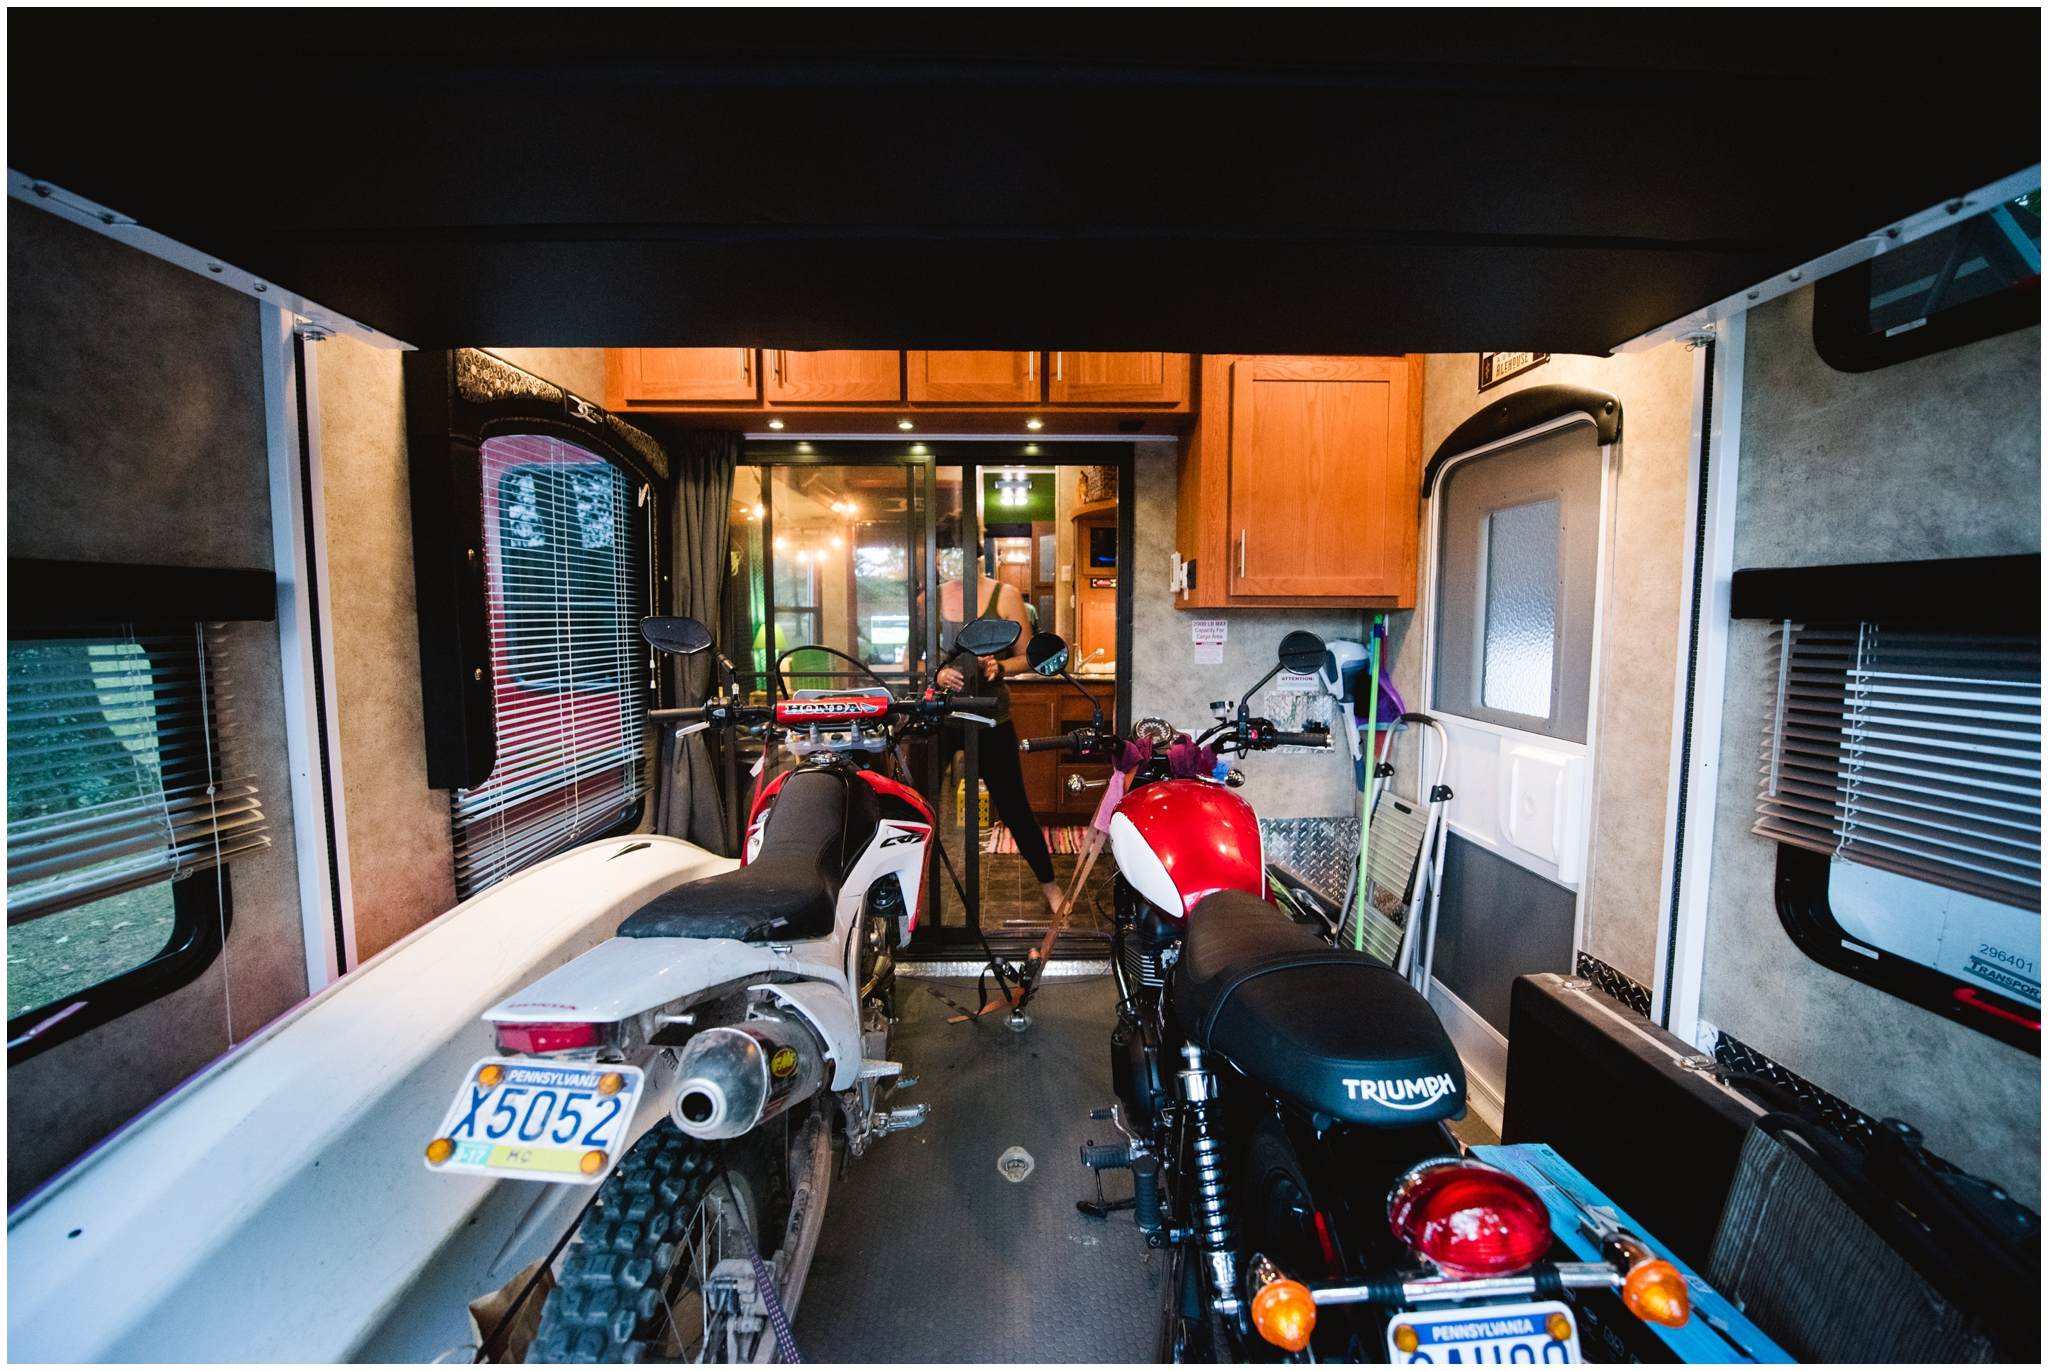 5th wheel toy hauler with bikes in garage